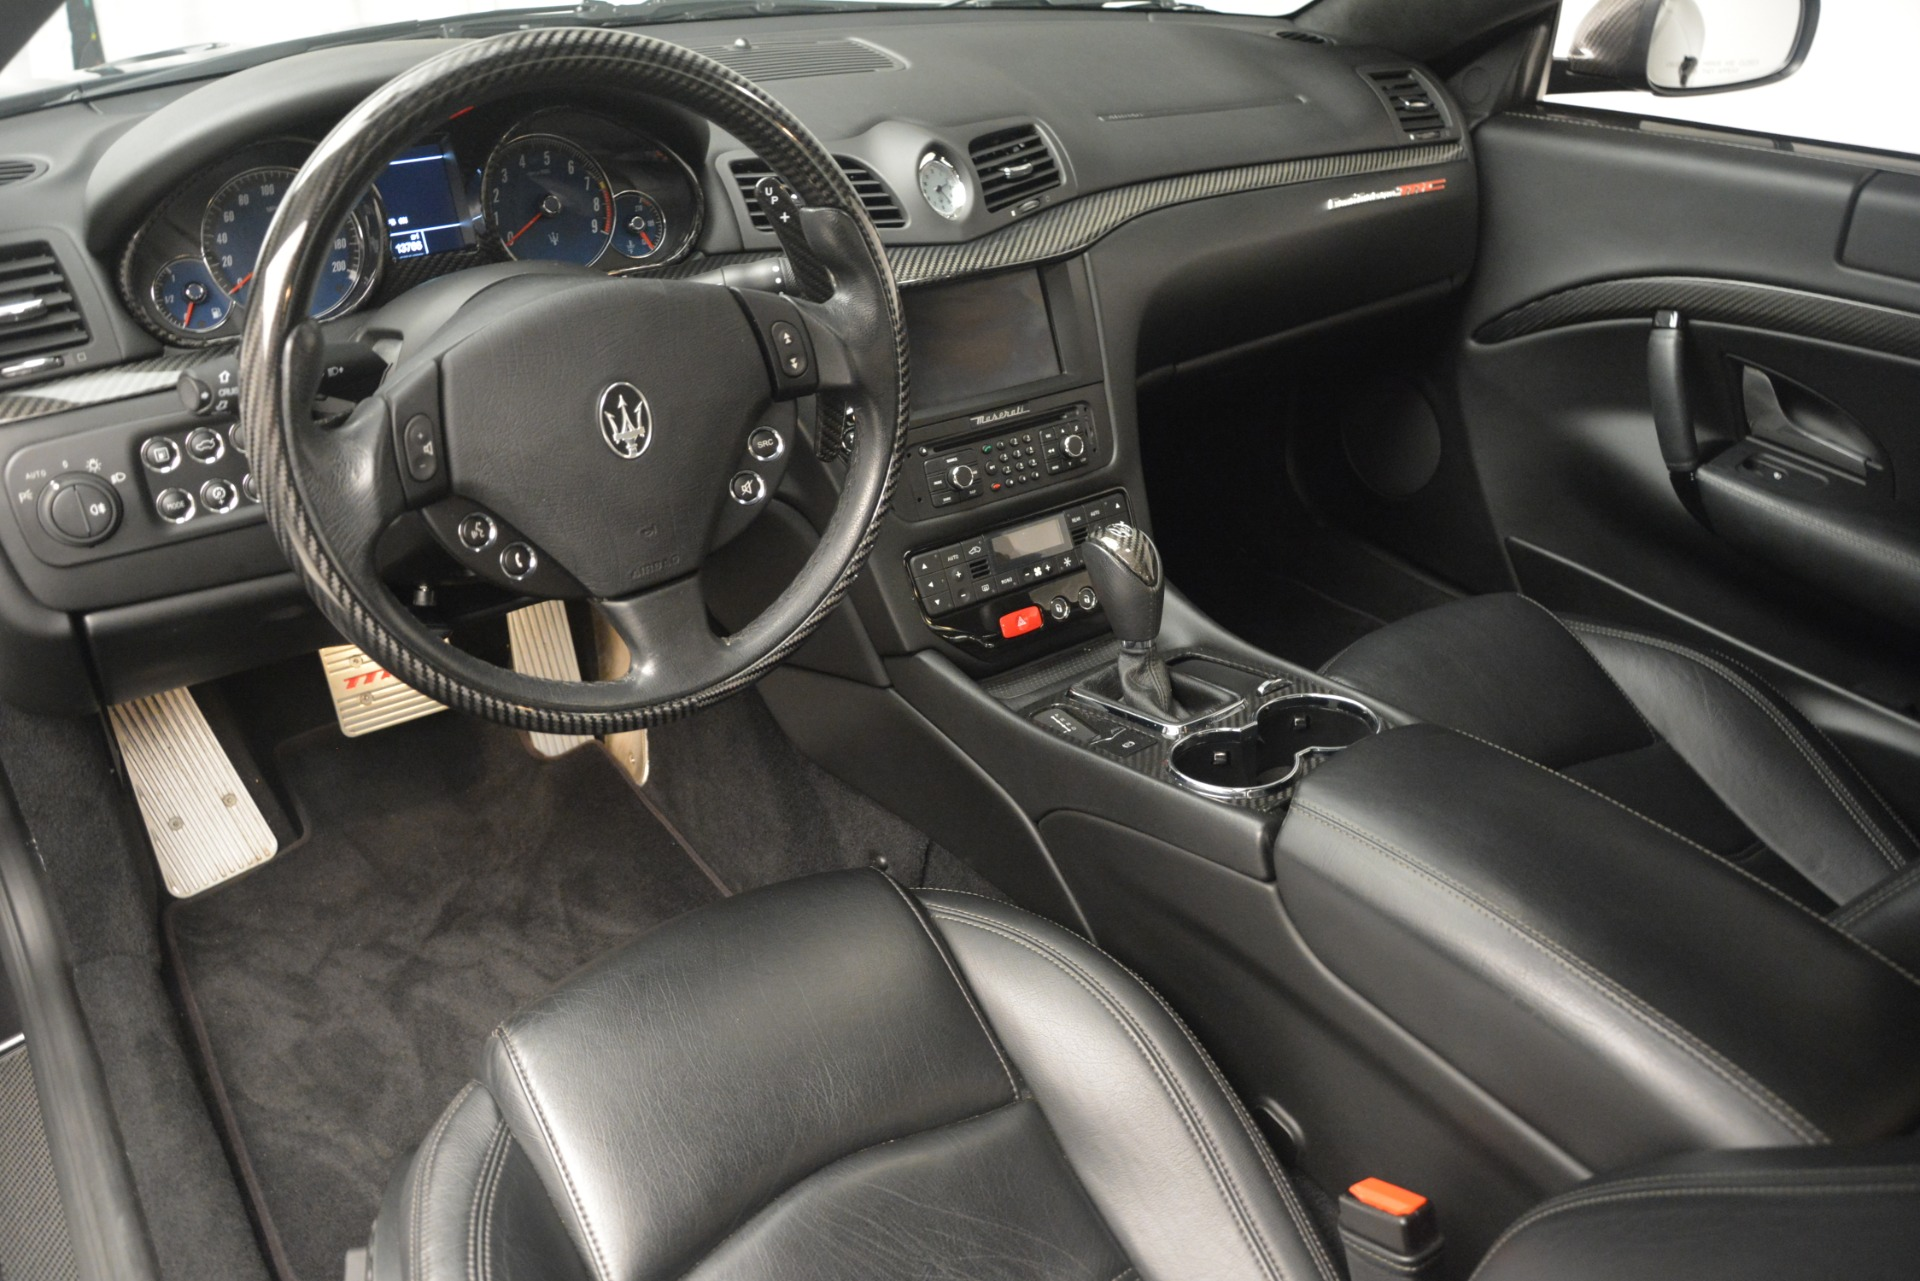 Used 2012 Maserati GranTurismo MC For Sale In Westport, CT 1284_p13